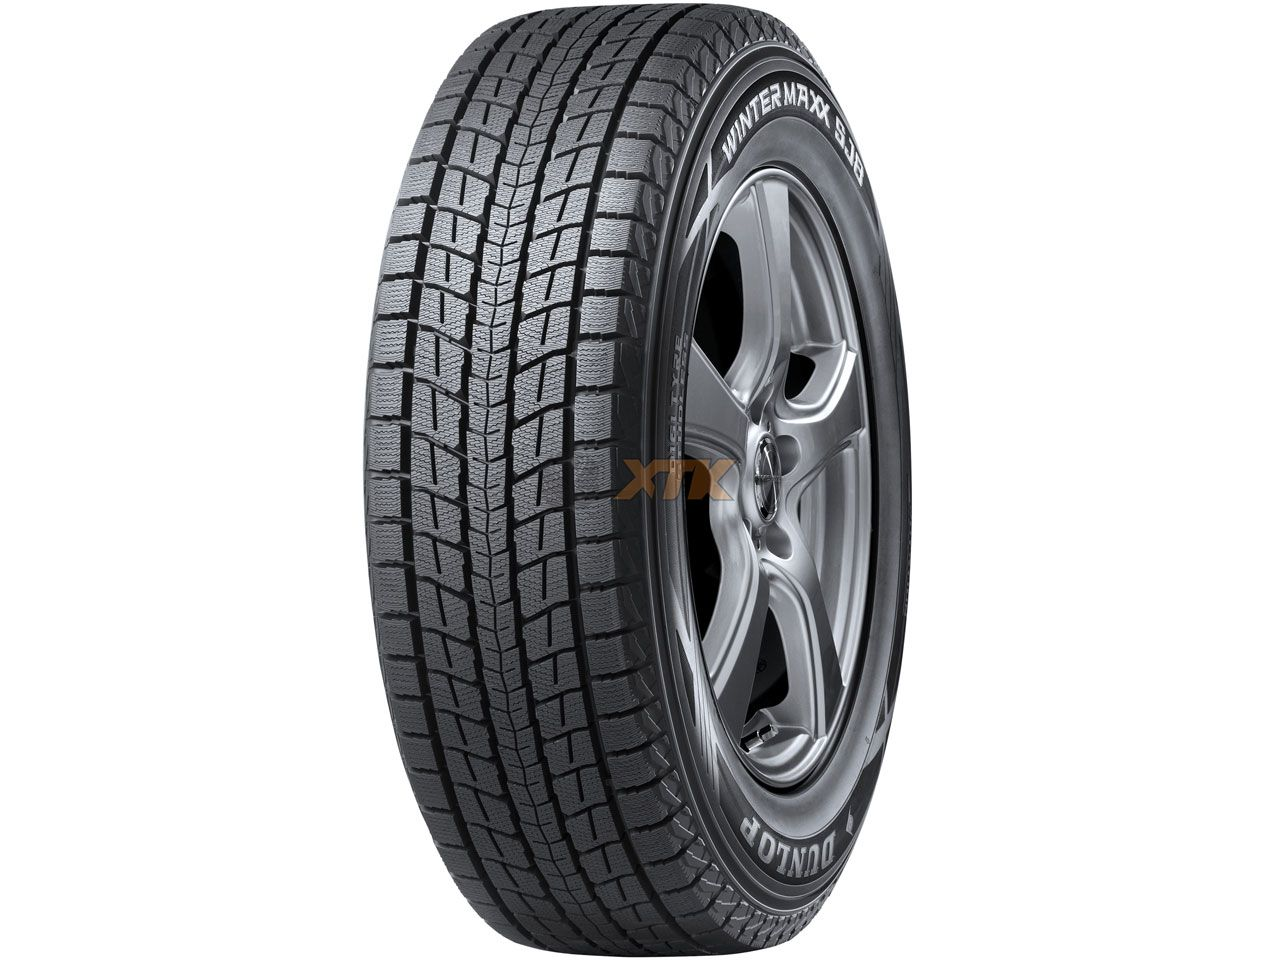 Автошина 265/70R16 112R Dunlop Winter MAXX SJ8